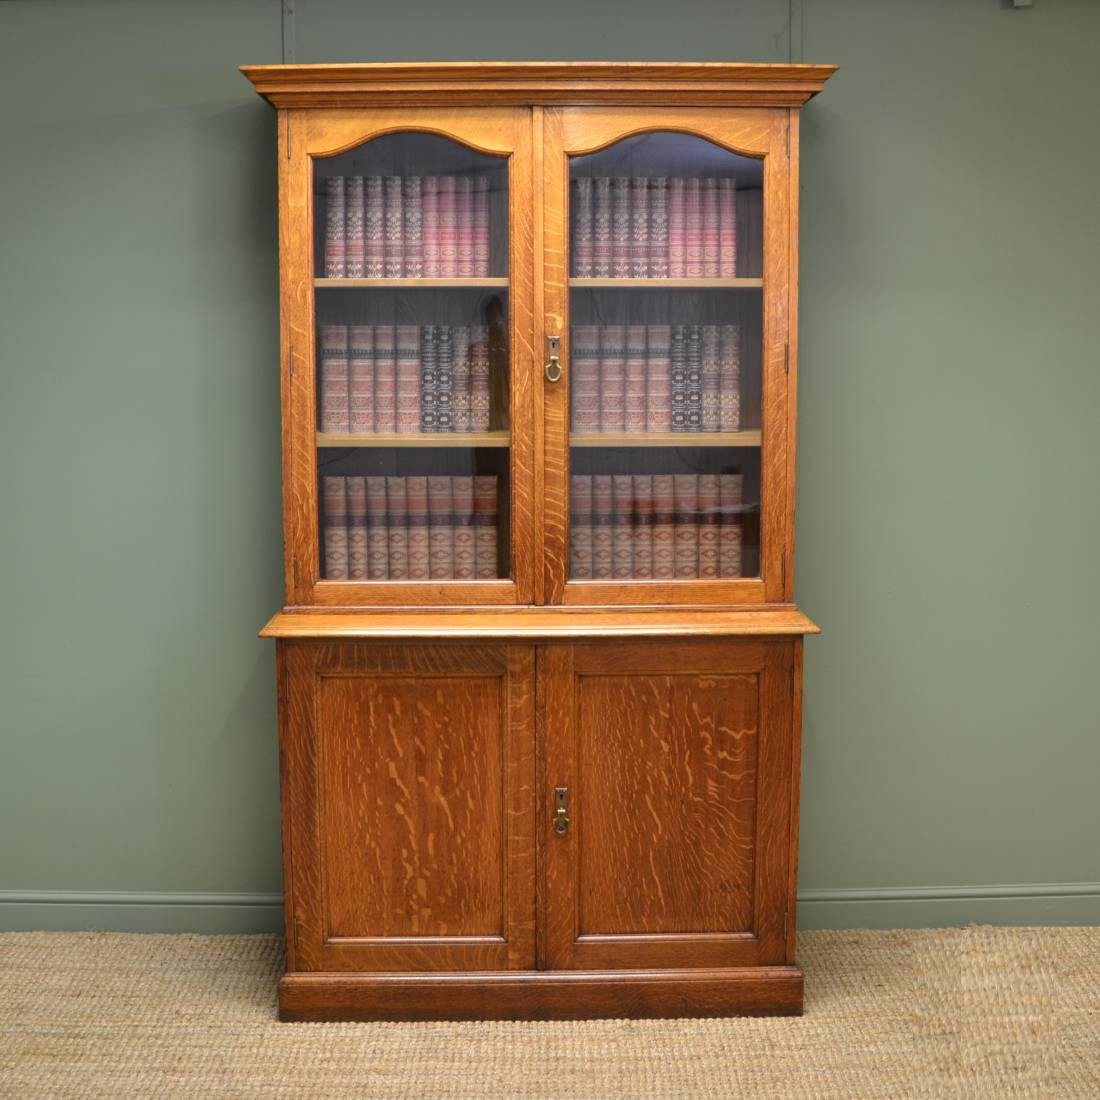 Superb Quality Gillows Antique Solid Oak Bookcase / Cupboard